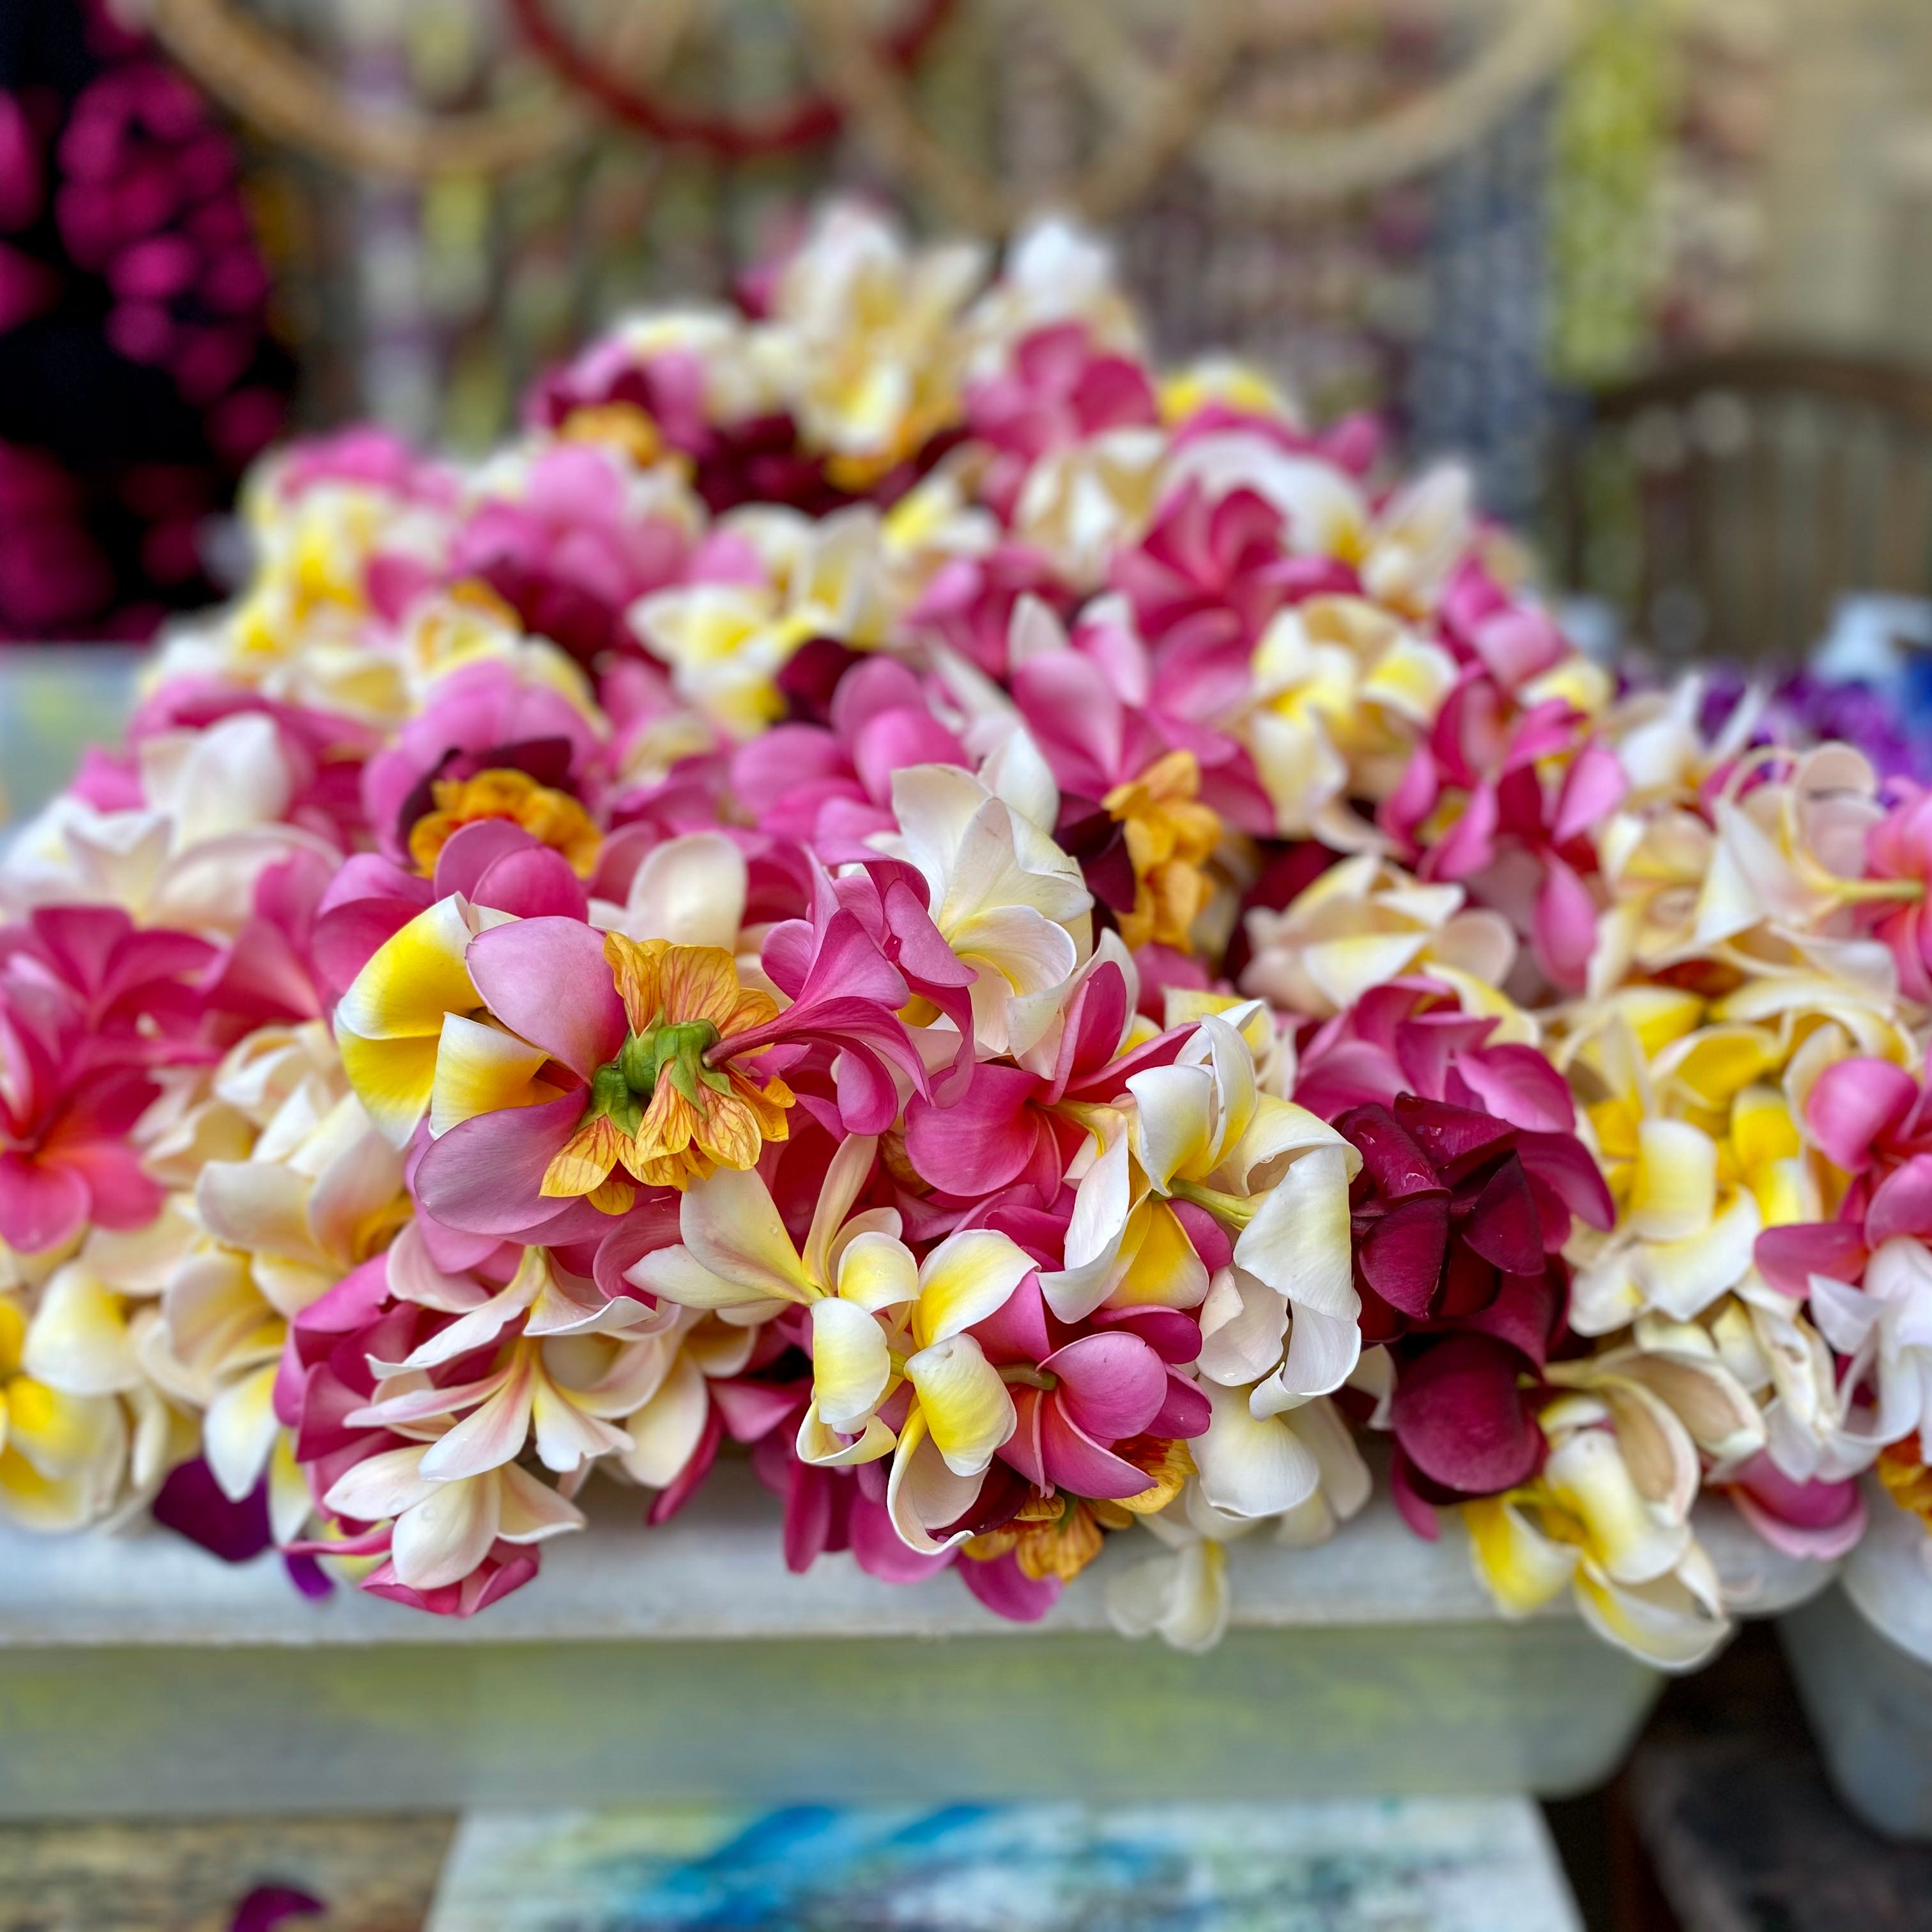 Lei made out of plumeria, which is one of the most popular — and fragrant — flowers in Hawaii.